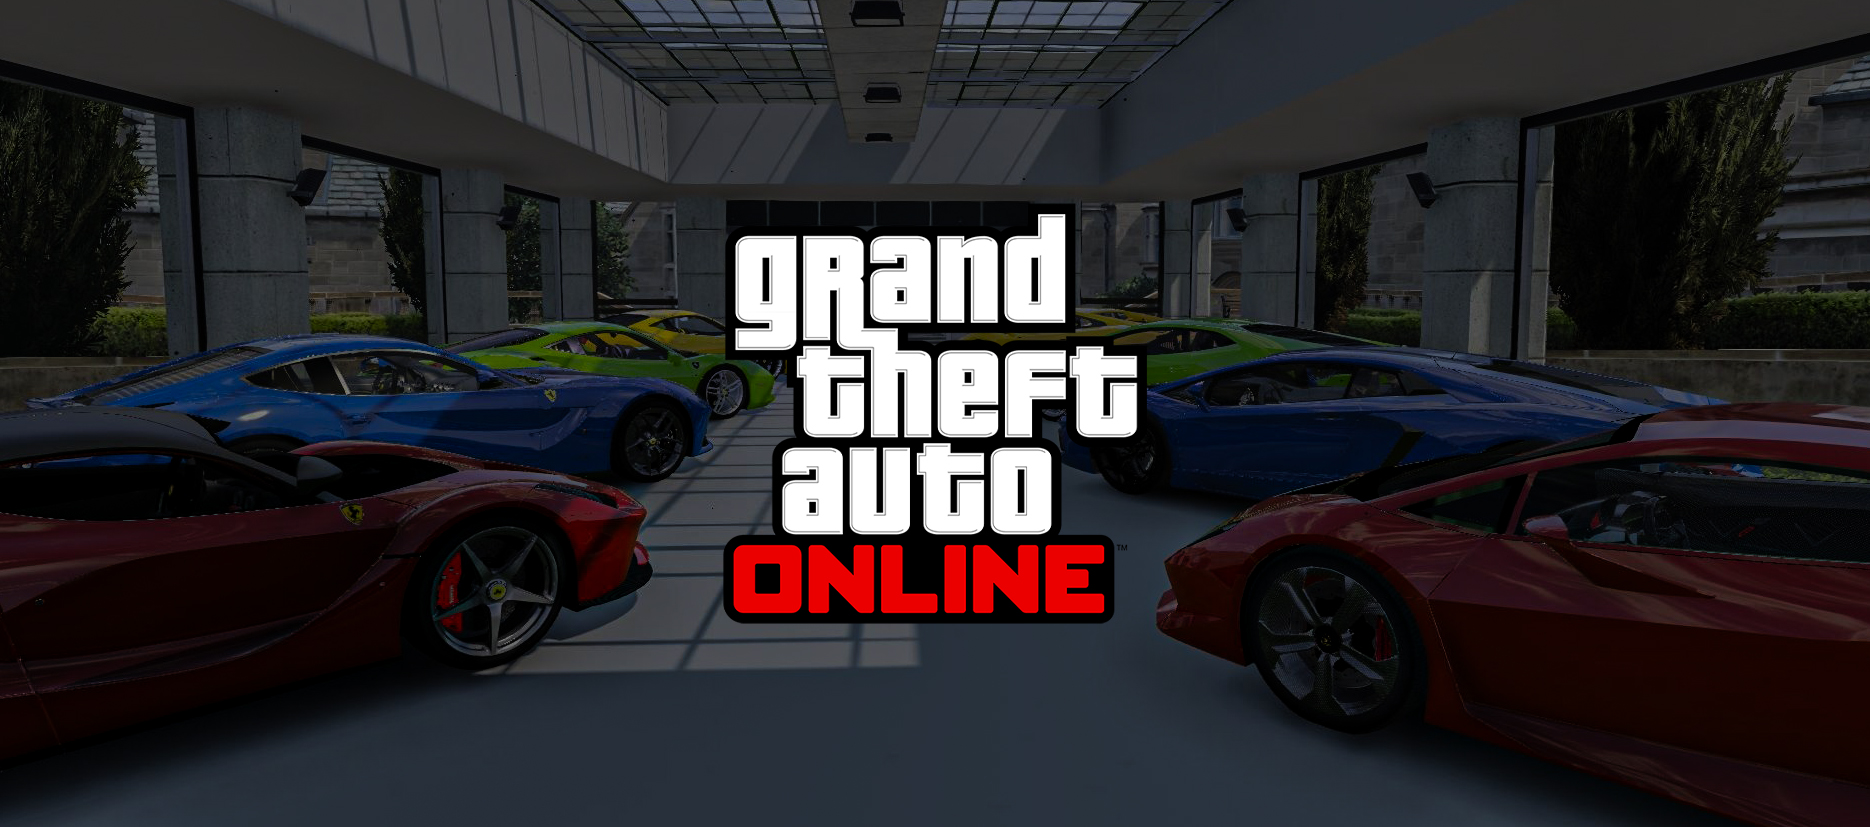 How to Sell Cars with Vehicle Stockroom GTA Online 2021 - Become Businessman, Nightclub Missions for Terrorbyte, and MOC gta online newswire gta online news this week gta online newswire reddit gta online newswire events gta online news reddit gta online news today gta online news bot discord gta online news weekly update gta online news events gta online news van gta online news sales gta online news app gta online content update news articles gta online news double rp and cash gta 5 online aktuelle news gta online news bonus gta online news cars gta online current news gta online news social club gta online cayo perico news gta online casino news gta online news discounts gta online news dlc gta online news double money gta online news deutsch gta online news de la semaine gta online daily news gta 5 online news deutsch gta online news english gta 5 online news english gta online news feed gta online news fr gta online fake news gta five online news rockstar games gta online news is rockstar games going out of business is gta online shutting down is gta online still popular 2020 is rockstar shutting down gta online is gta 5 online shutting down gta online heist news which gta online heist pays the most what are the gta online heists what is the hardest heist on gta online gta online news ign gta online news ita latest news in gta 5 online gta online latest news gta online loading screen news what's wrong with gta online right now is gta online still getting updates is there a problem with gta online today is gta online going to end what is double money in gta online what is double money in gta online this week gta online new news what is the next gta online update when's the next gta online update gta online xbox one news is gta online down on xbox one why does gta online keep crashing xbox one is gta online free on xbox one why does gta online keep disconnecting xbox one gta online news ps4 gta online news pl gta online pc news gta online ps5 news how to gta onli